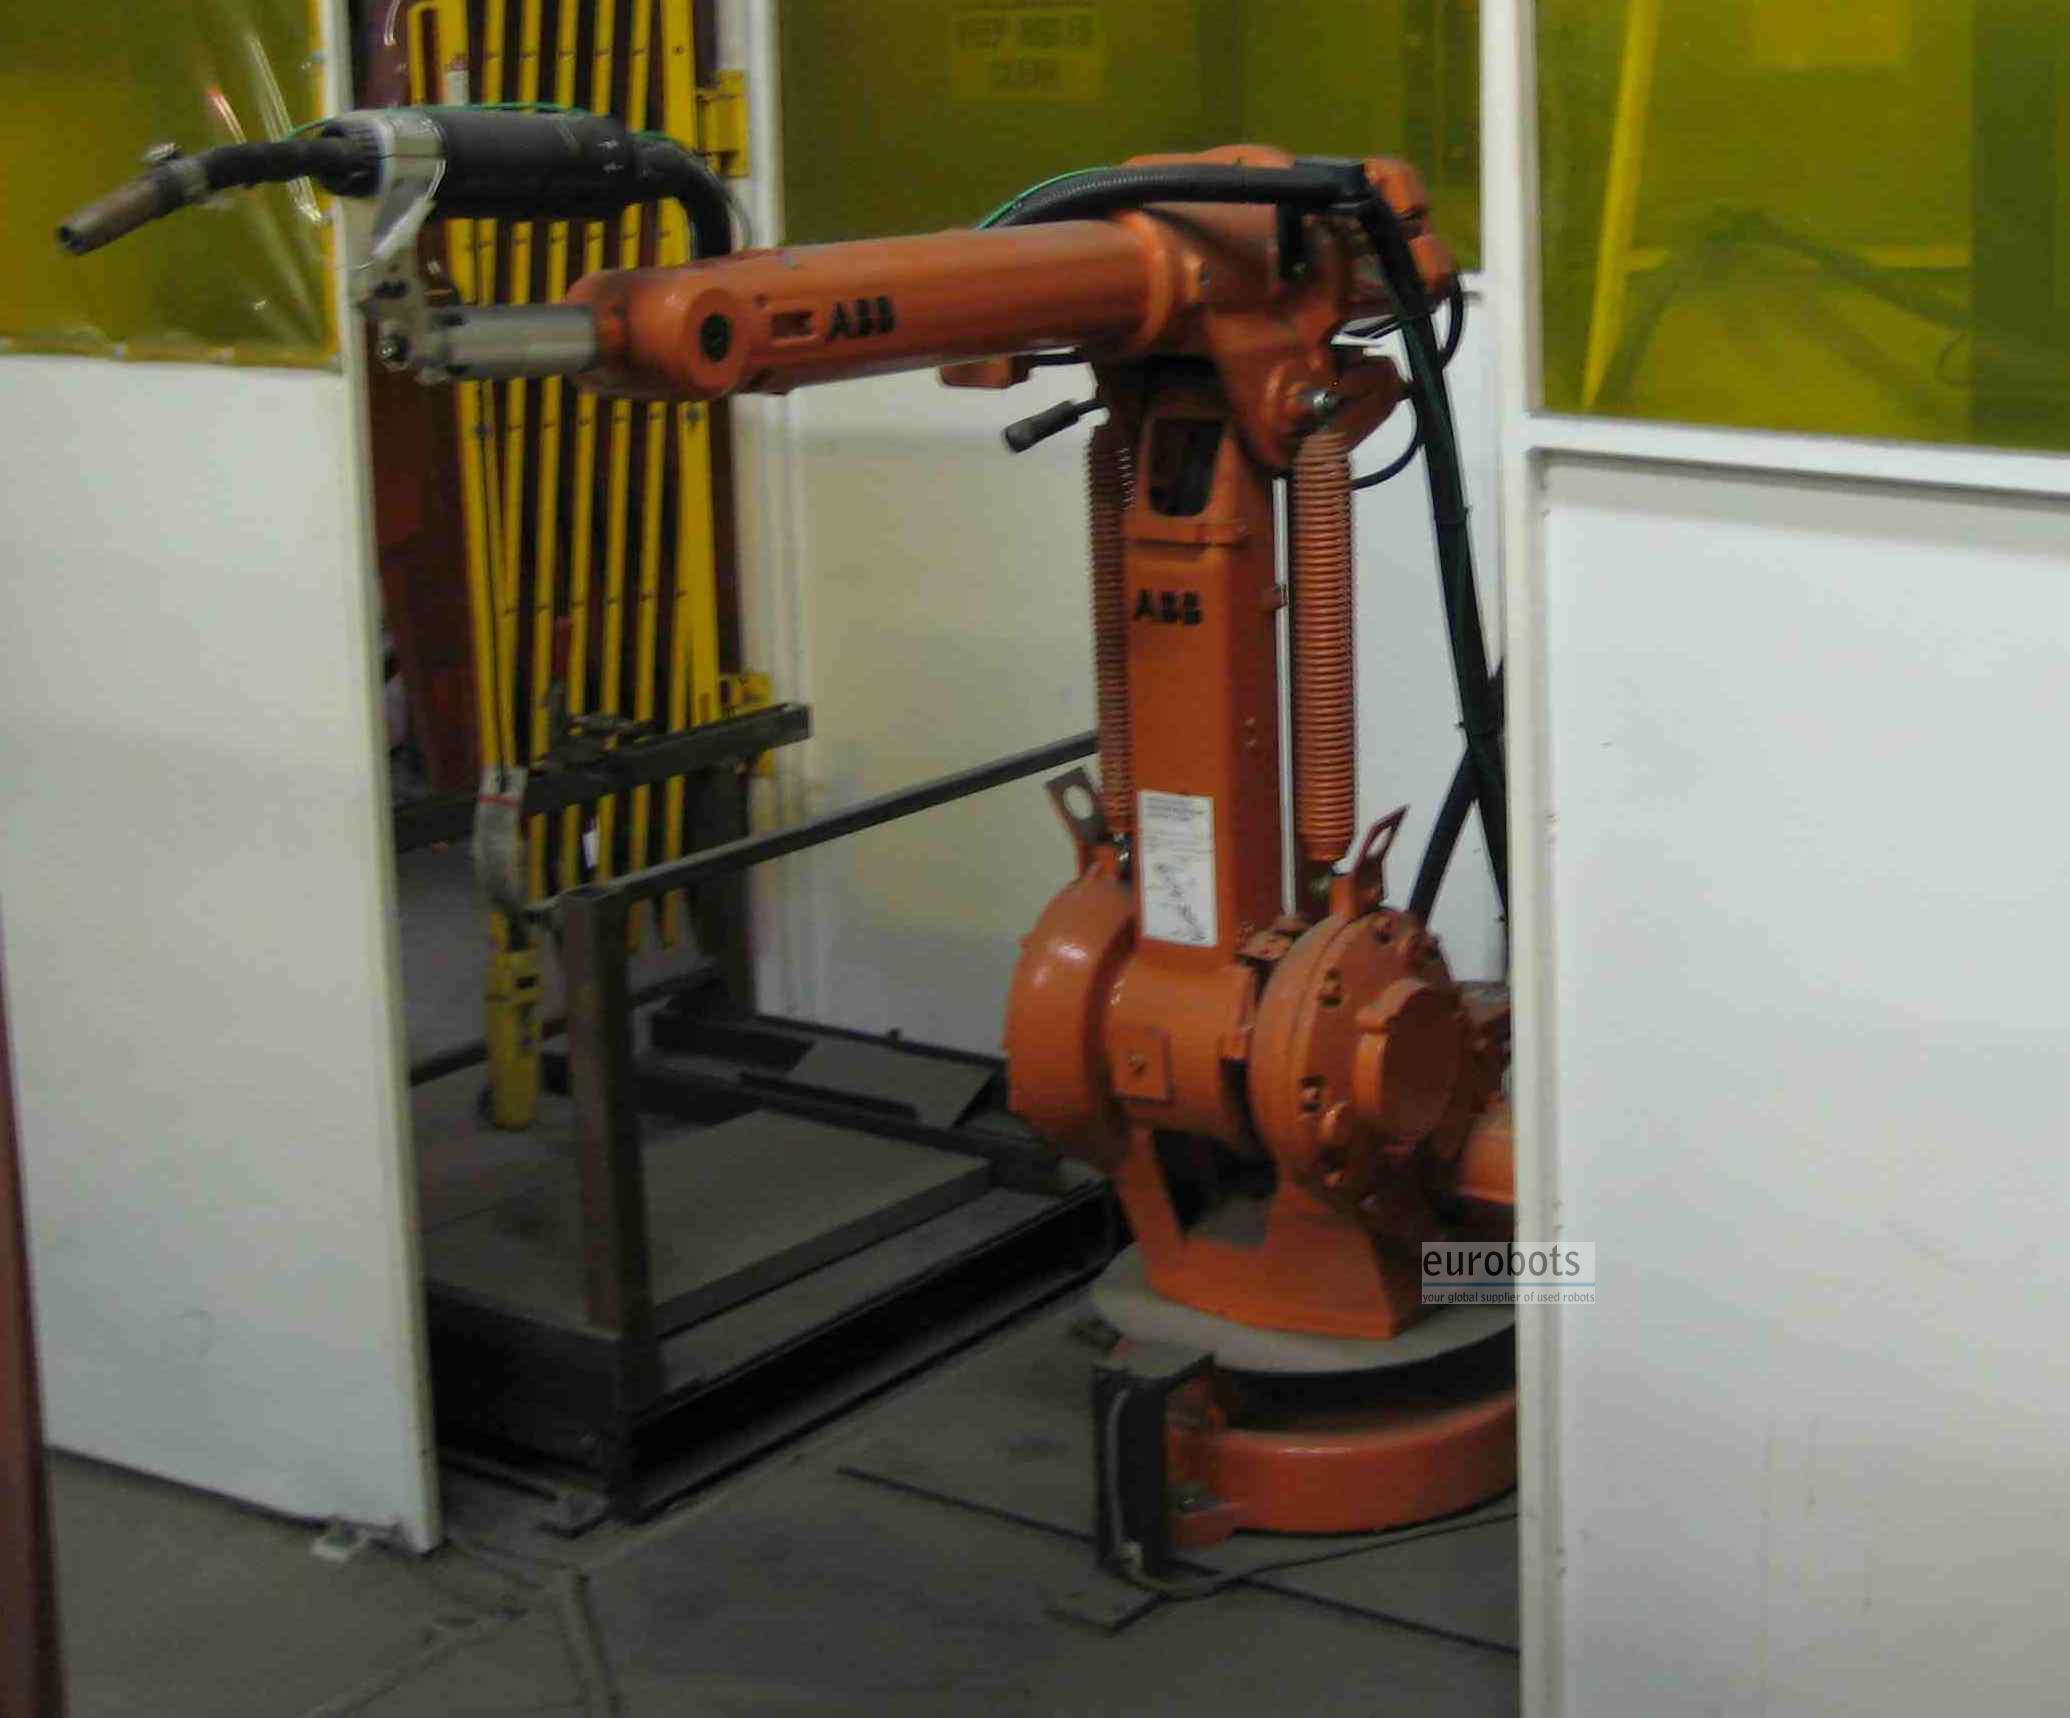 Abb Irb1400m2000 Arc Welding Robot With Irb250 Servocontrolled Positioner And Fronius Tps4000 Power Source Eurobots